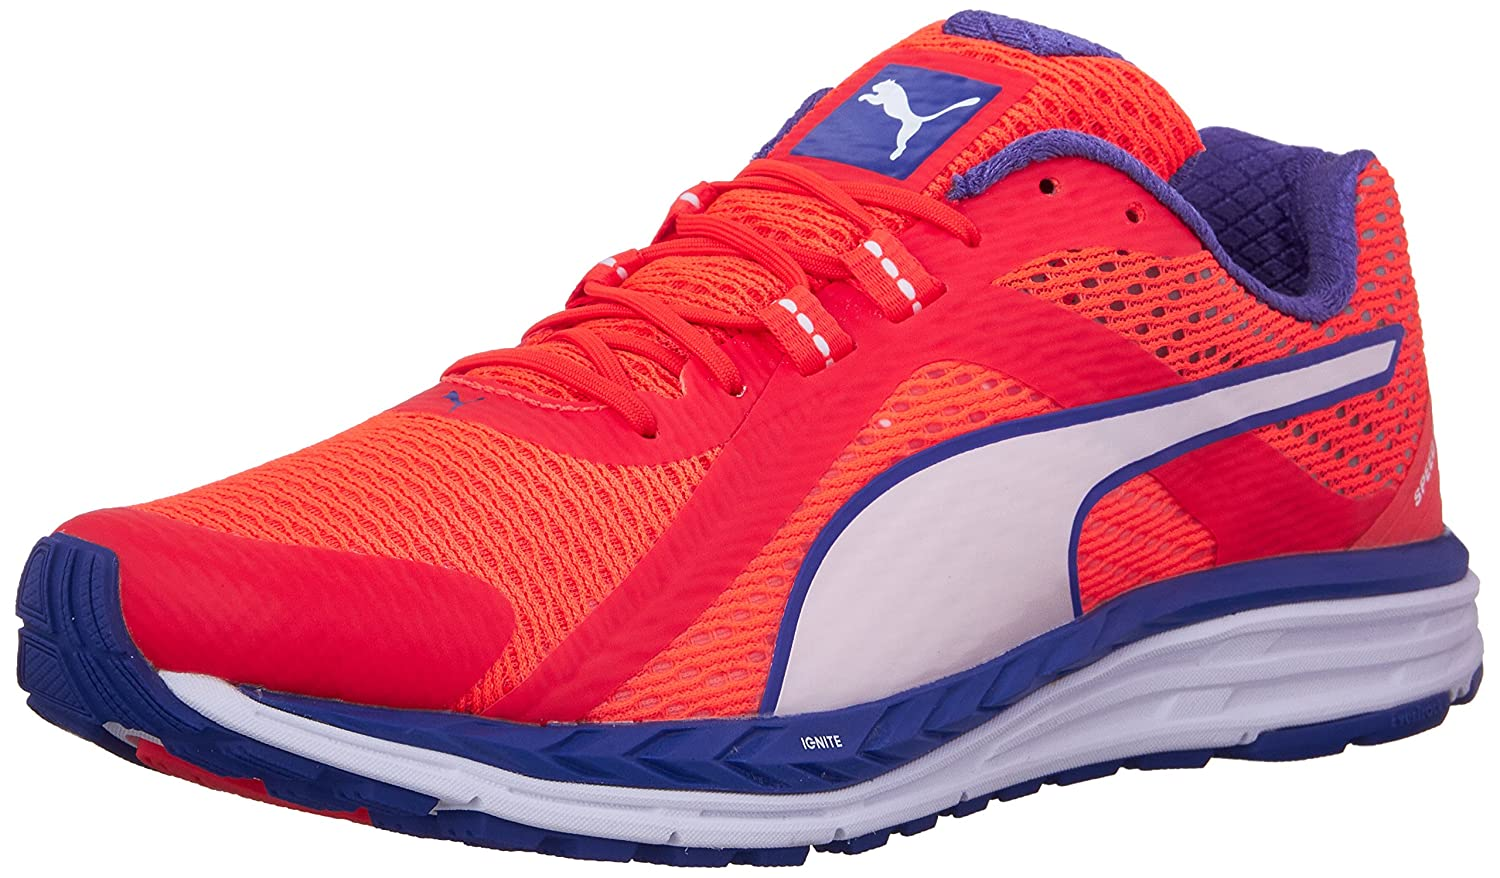 887f46089e573a Puma Women s Speed 500 Ignite Red Blast Royal Blue White Ankle-High Running  Shoe - 9M  Amazon.in  Shoes   Handbags